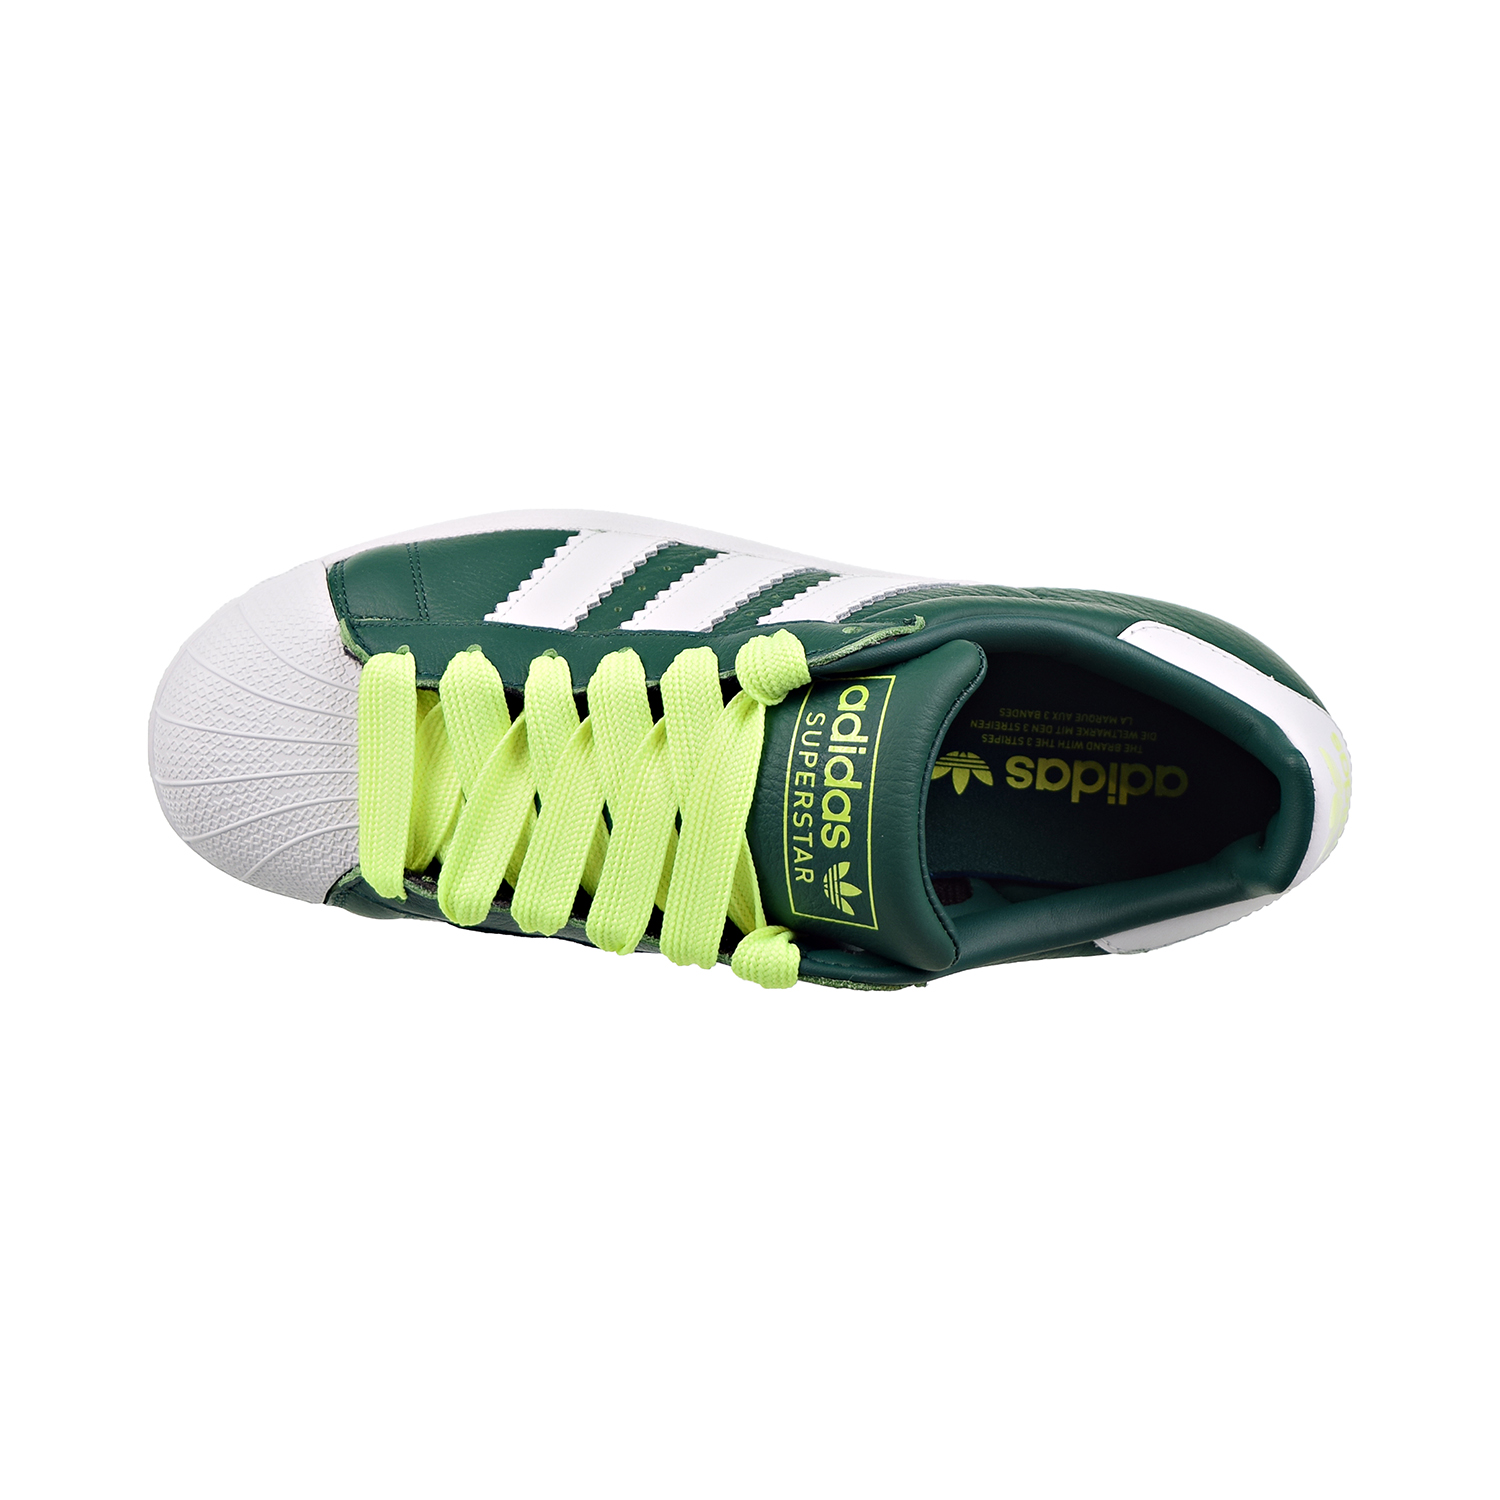 Details about Adidas Superstar Mens Shoes Collegiate Green Cloud White Hi Res Yellow bd7419